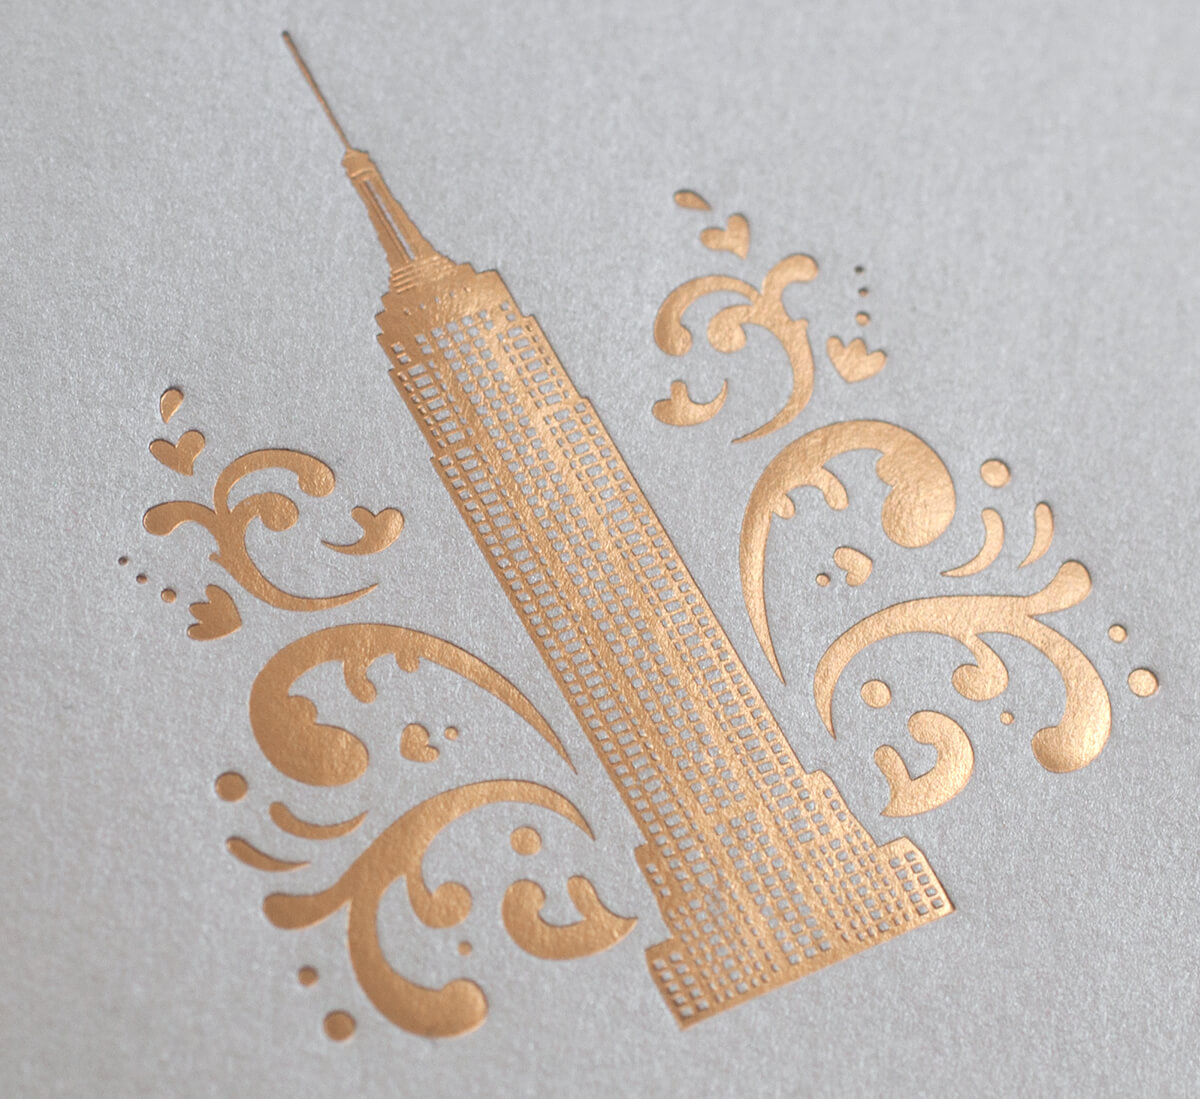 Gold foil Empire State Building